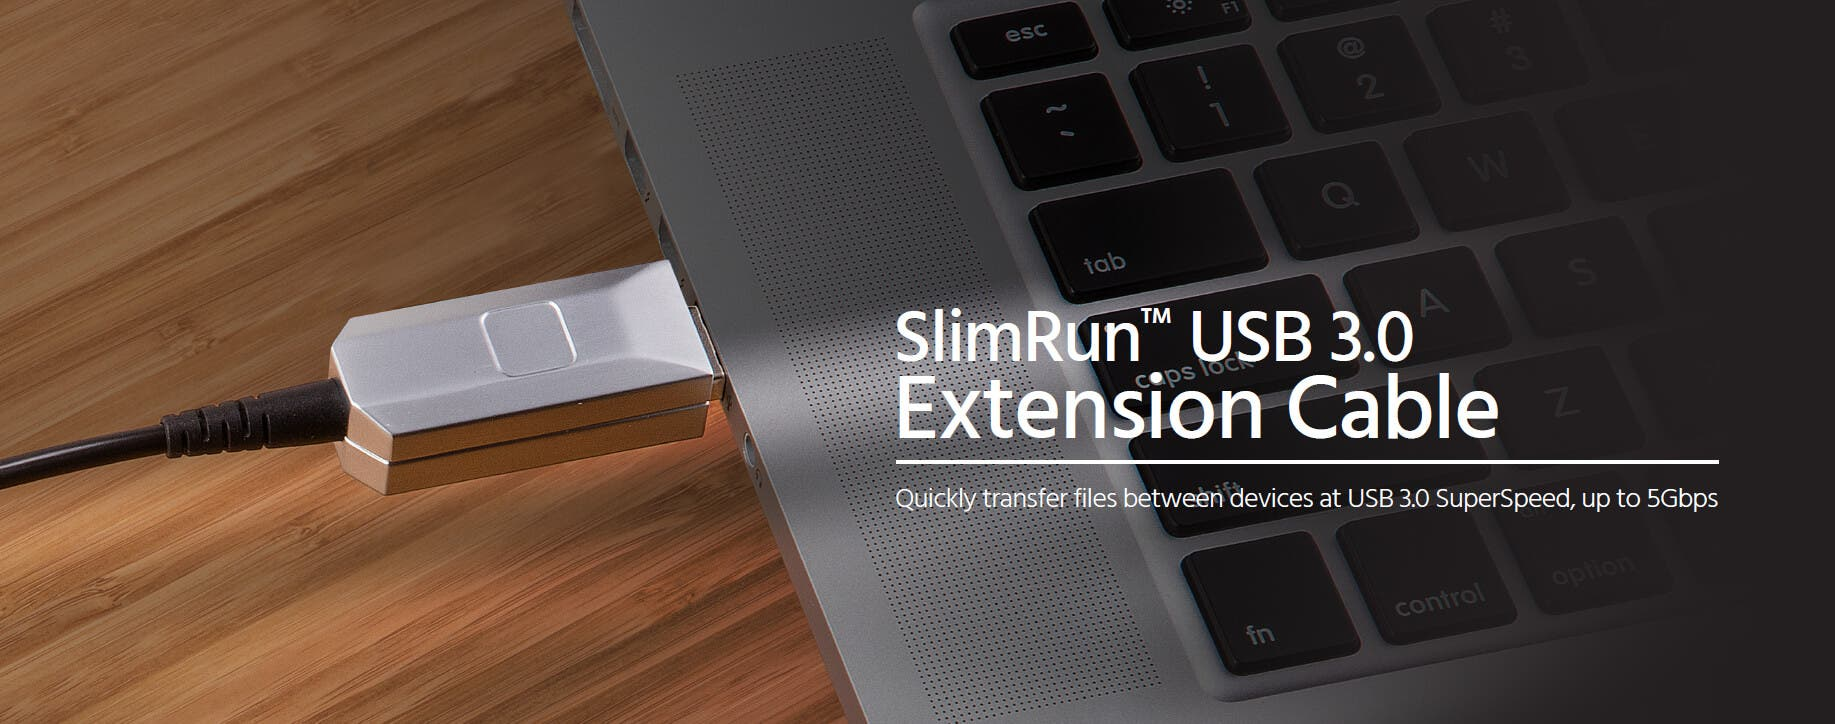 SlimRun USB 3.0 Extension Cable